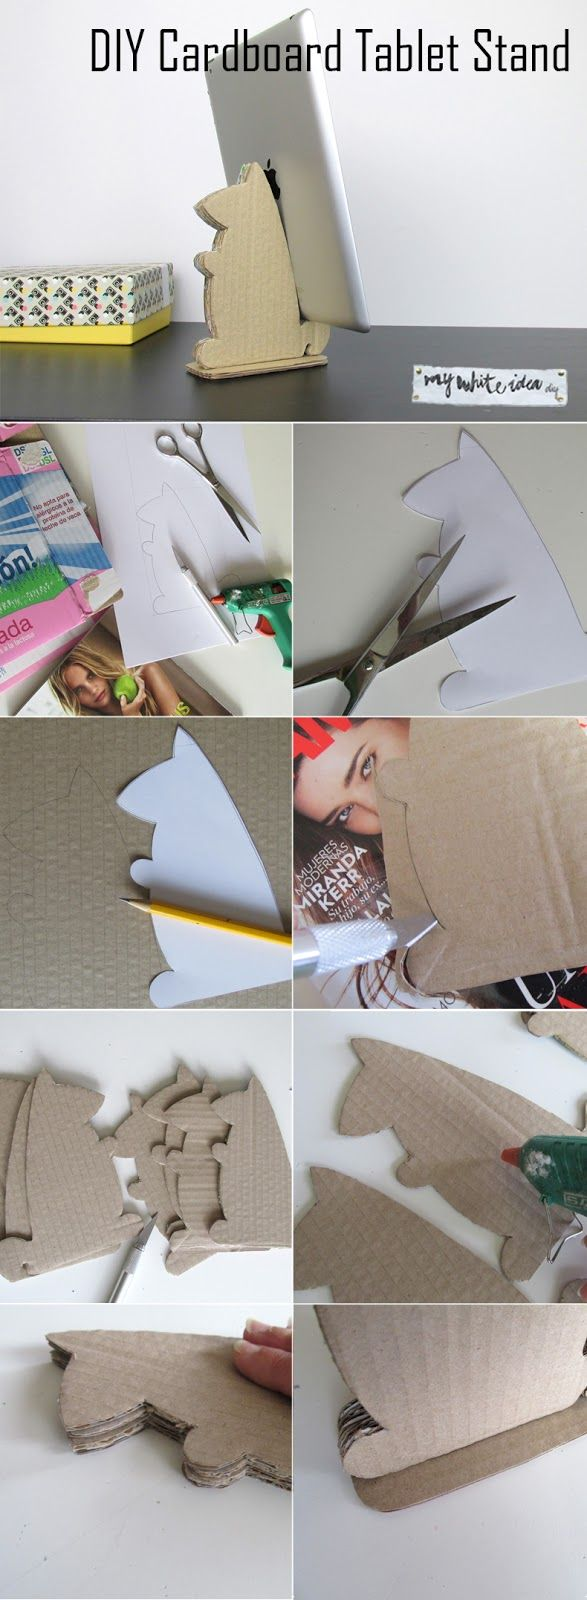 DIY Cardboard Tablet Stand | MY WHITE IDEA DIY                                                                                                                                                                                 More